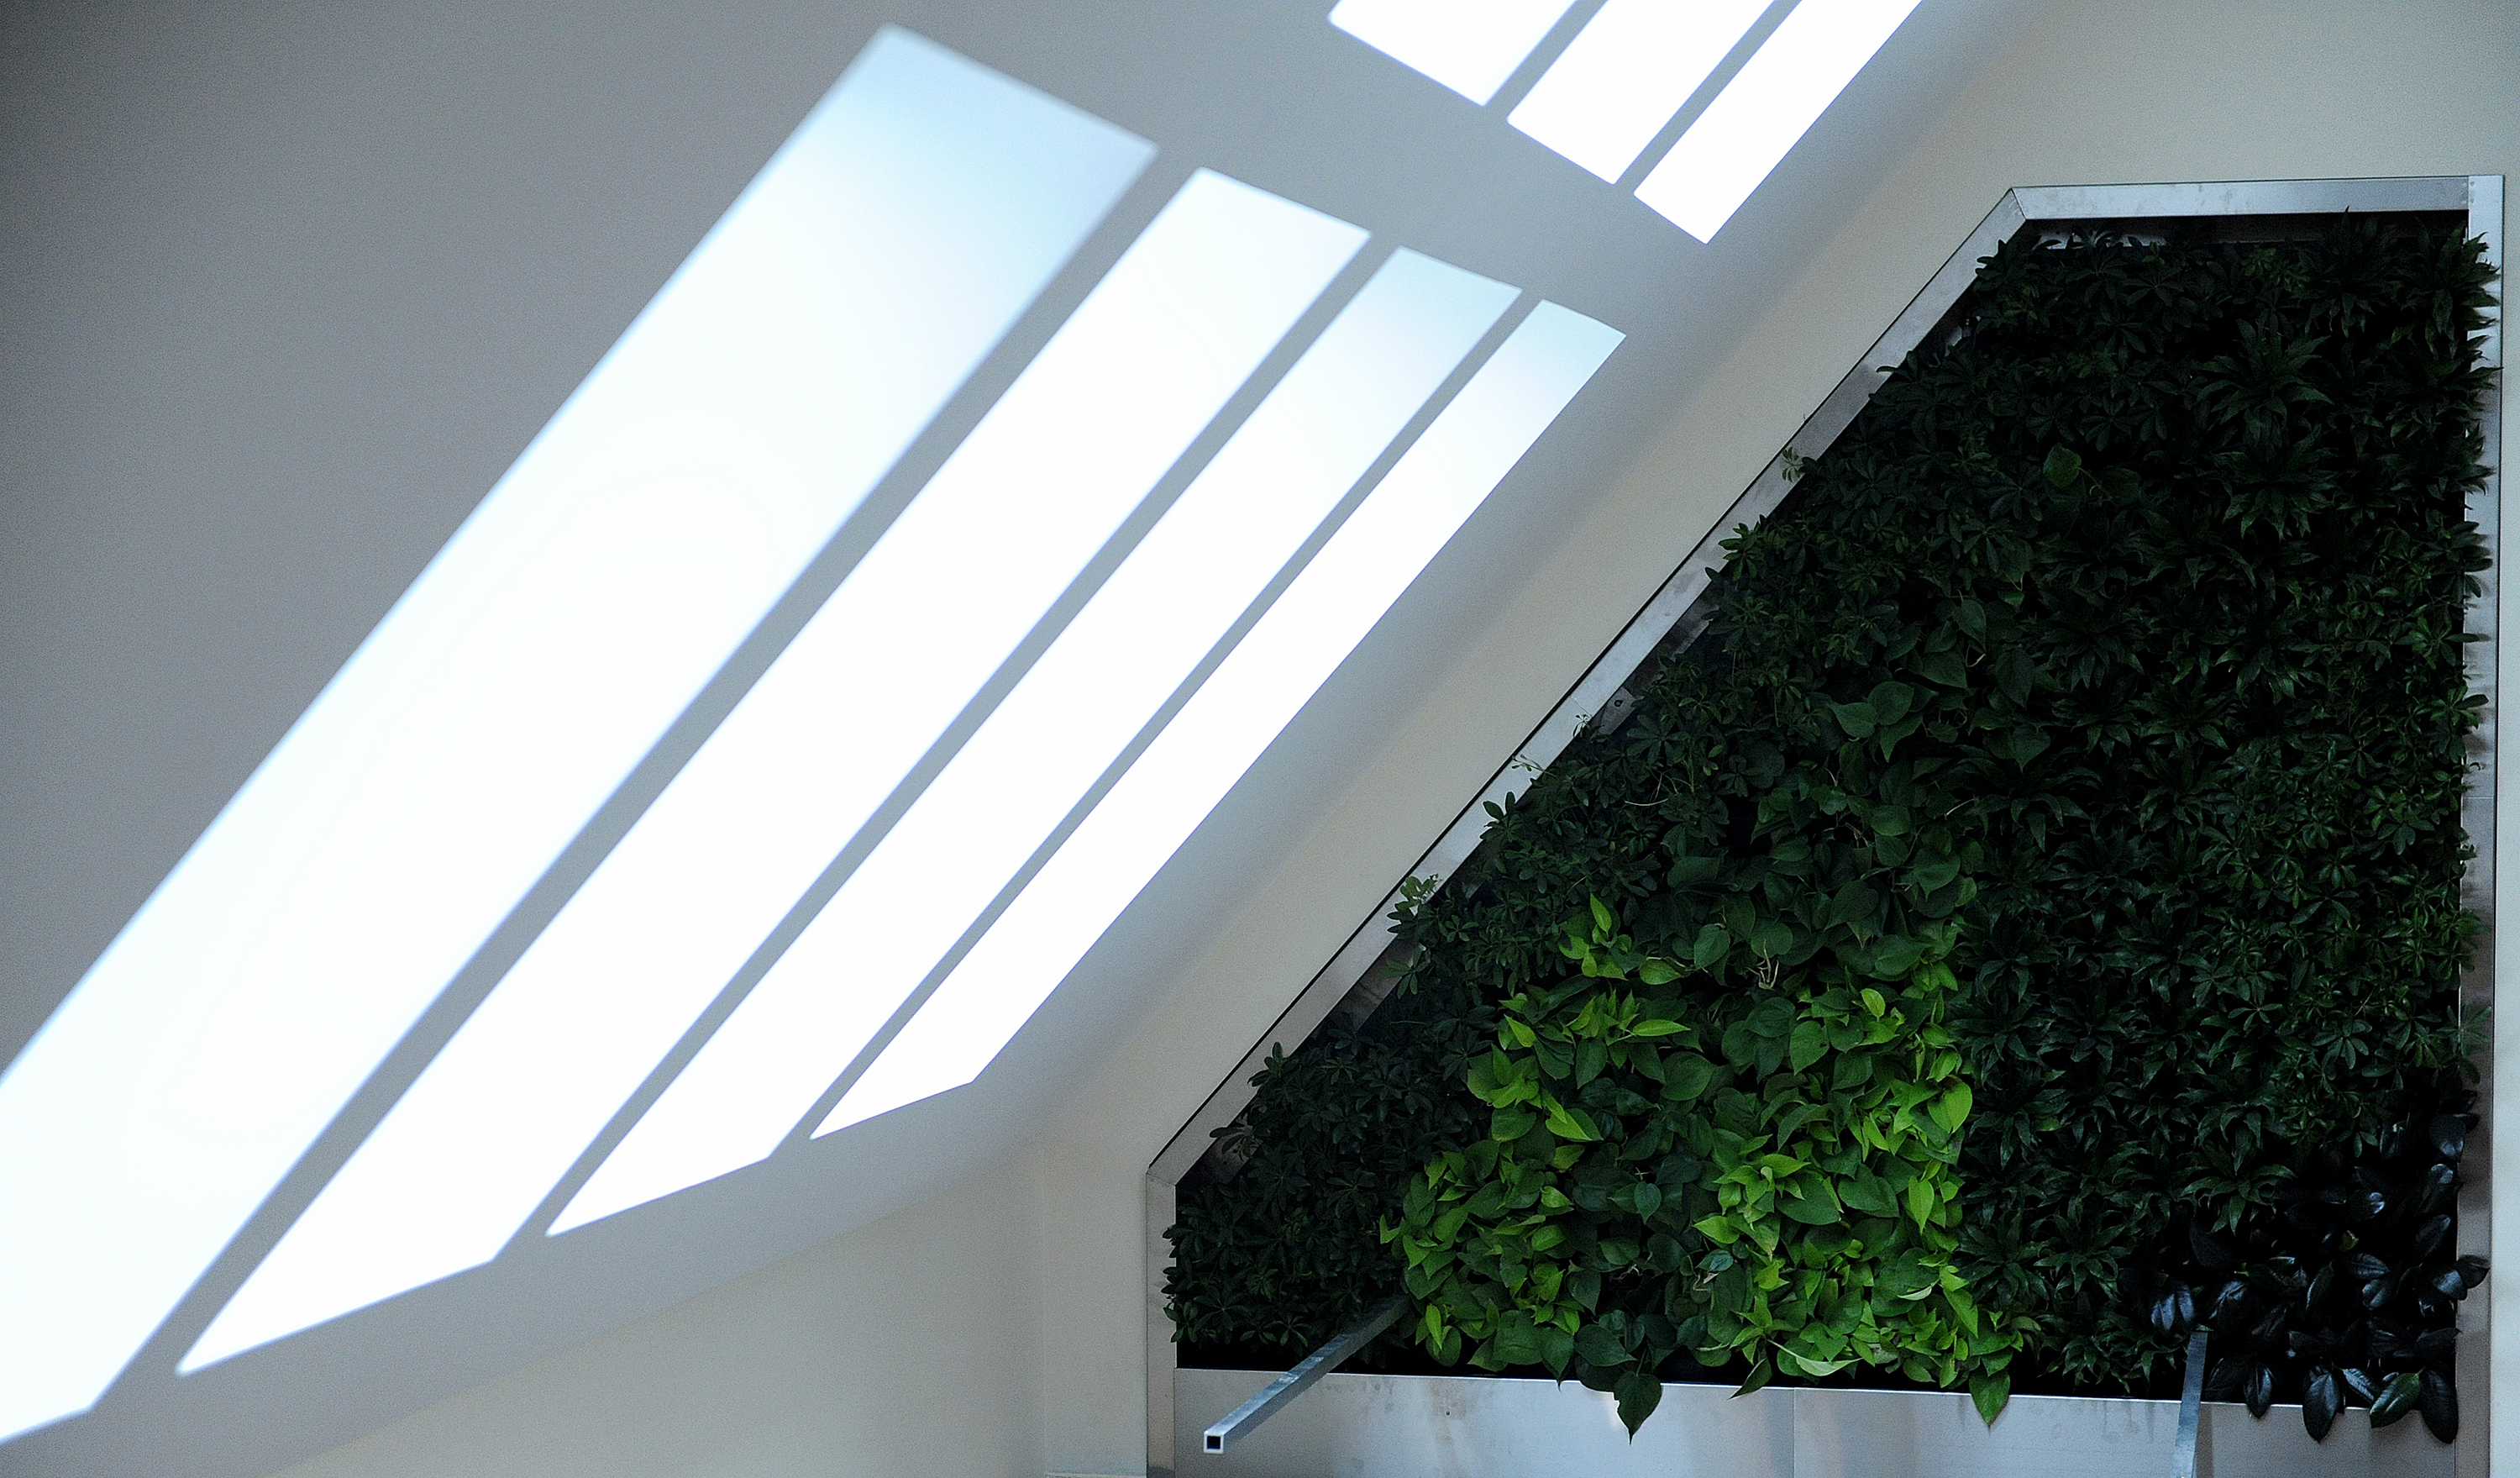 The living wall inside Hildreth-Mirza Hall at Bucknell University.